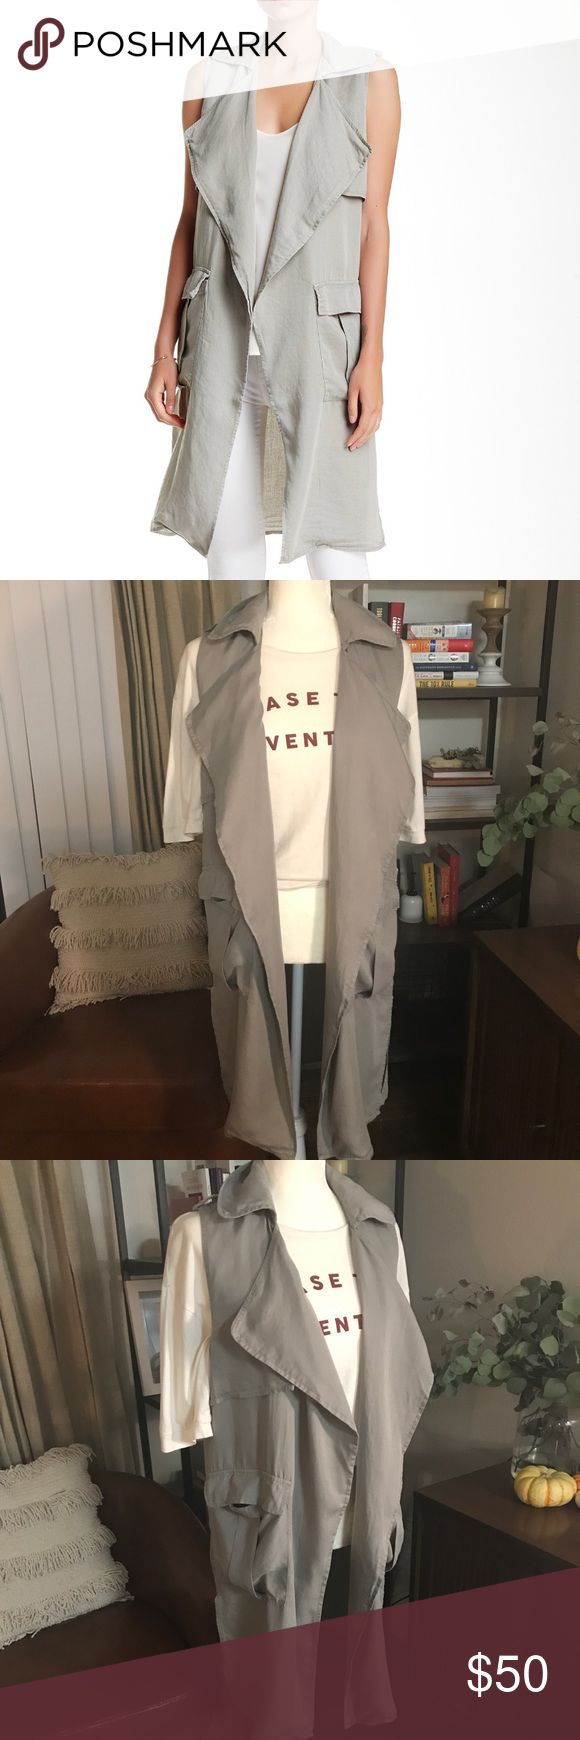 """NWT Walter Baker Terry Sleeveless Vest Sz M Walter Baker, oversized lapel flutters down the front of a safari inspired sleeveless cargo vest. Notch collar, sleeveless, open front, 2 front flap pockets, approx 38"""" length. 100% lyocell Walter Baker Jackets & Coats Vests"""